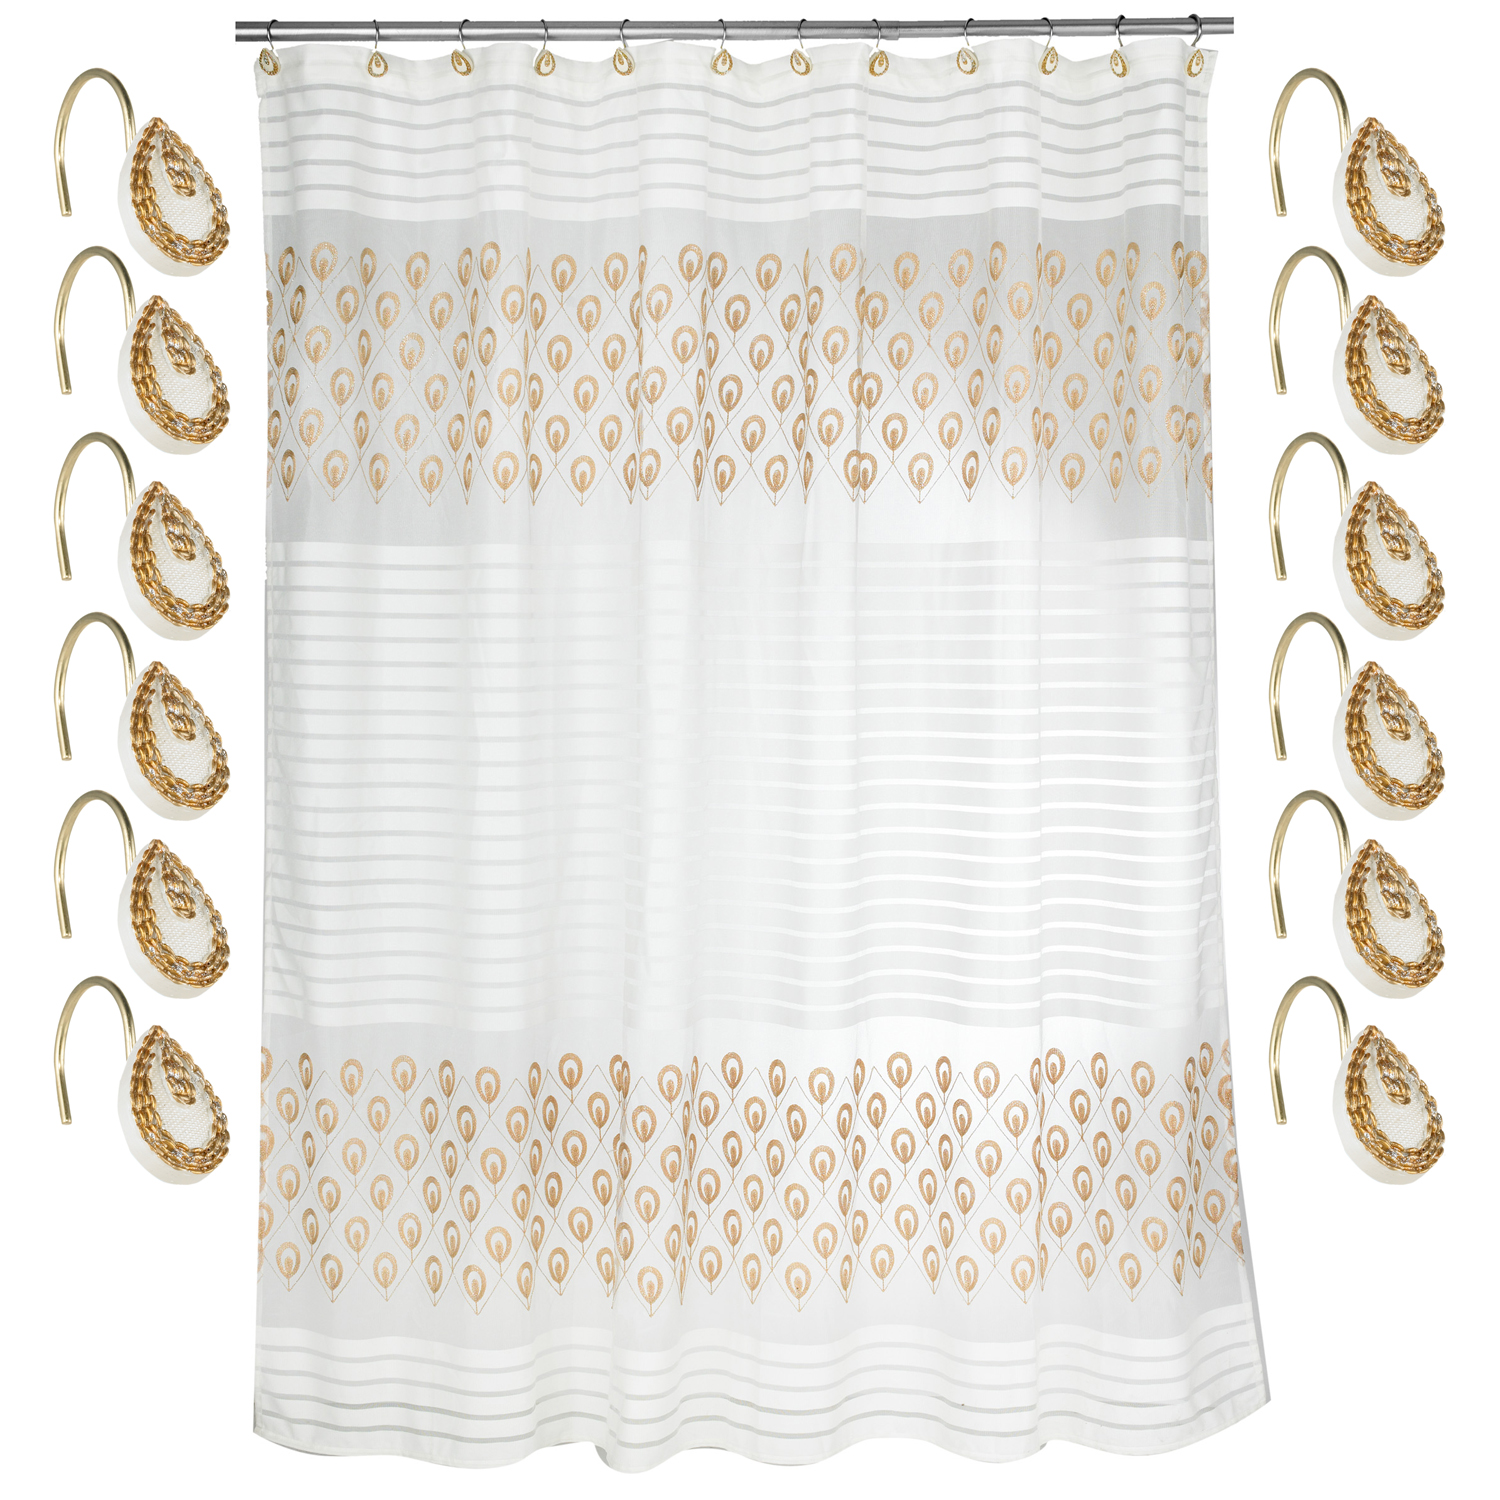 Details About Bathroom Shower Curtain And Hooks Set Beige Gold Popular Bath Seraphina